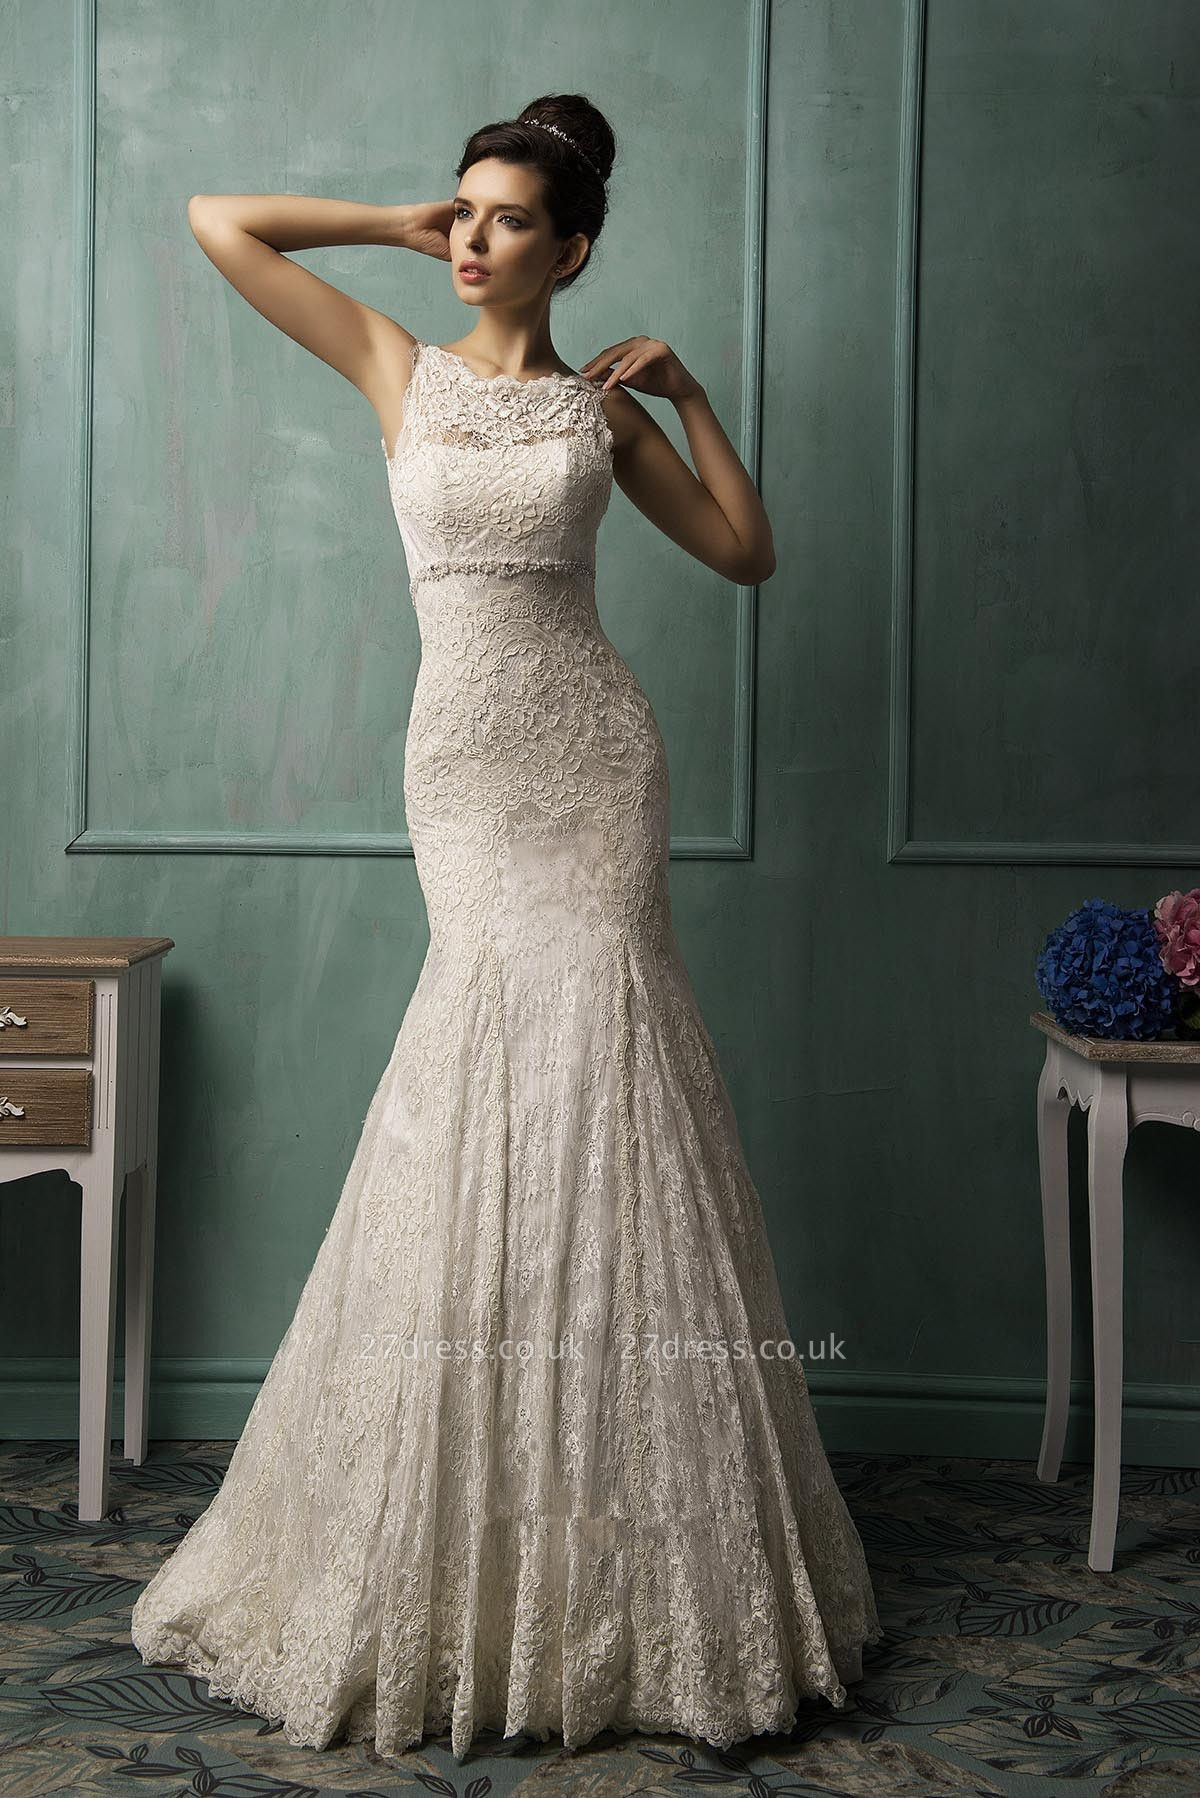 Illusion Sleeveless Sexy Mermaid Wedding Dress With Lace Zipper